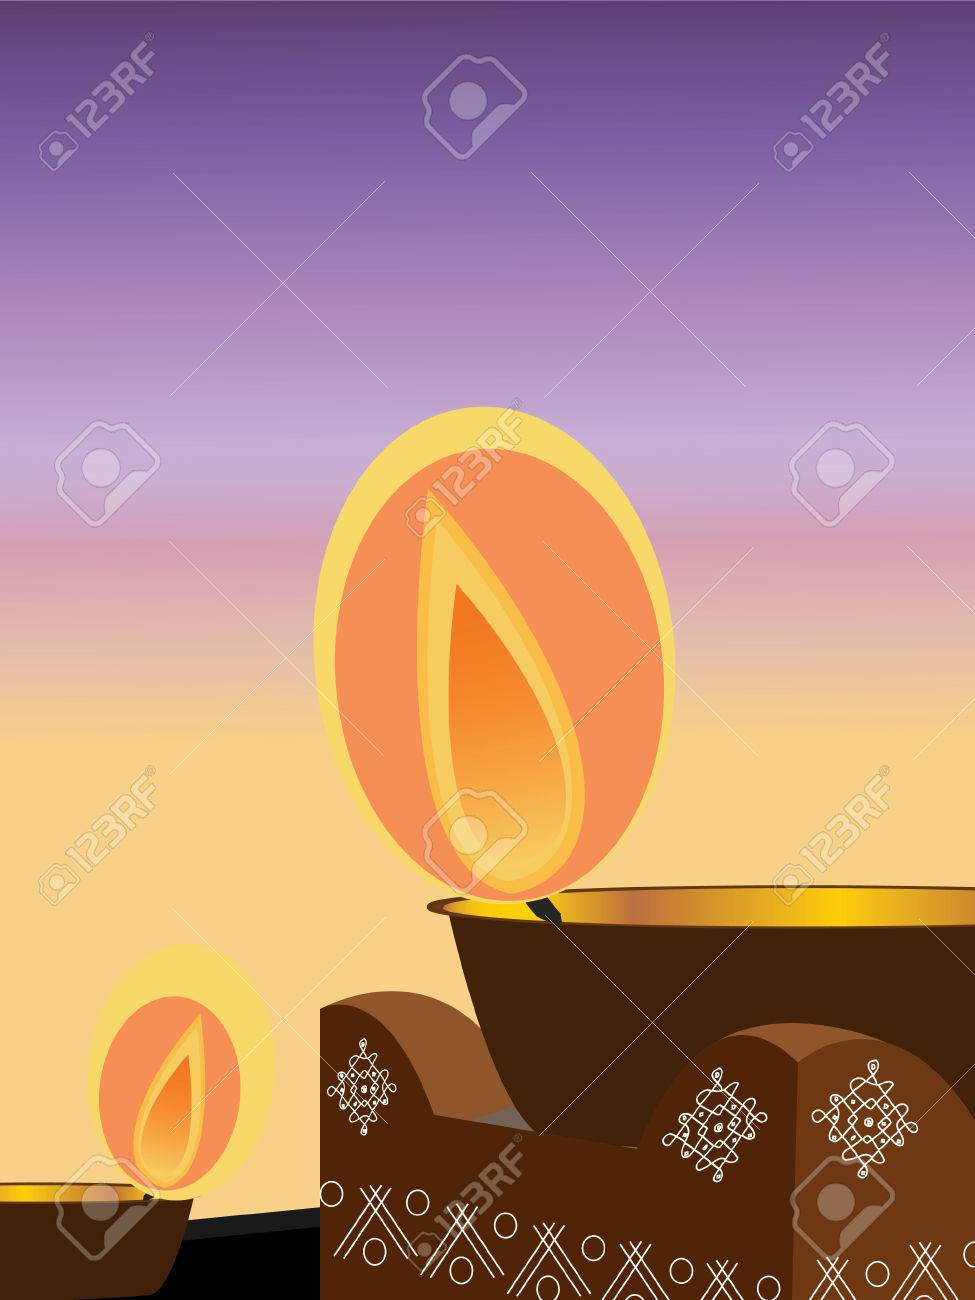 Illustration Of An Earthen Lamp Lit During The Hindu Festival ... for Earthen Lamp Vector  165jwn